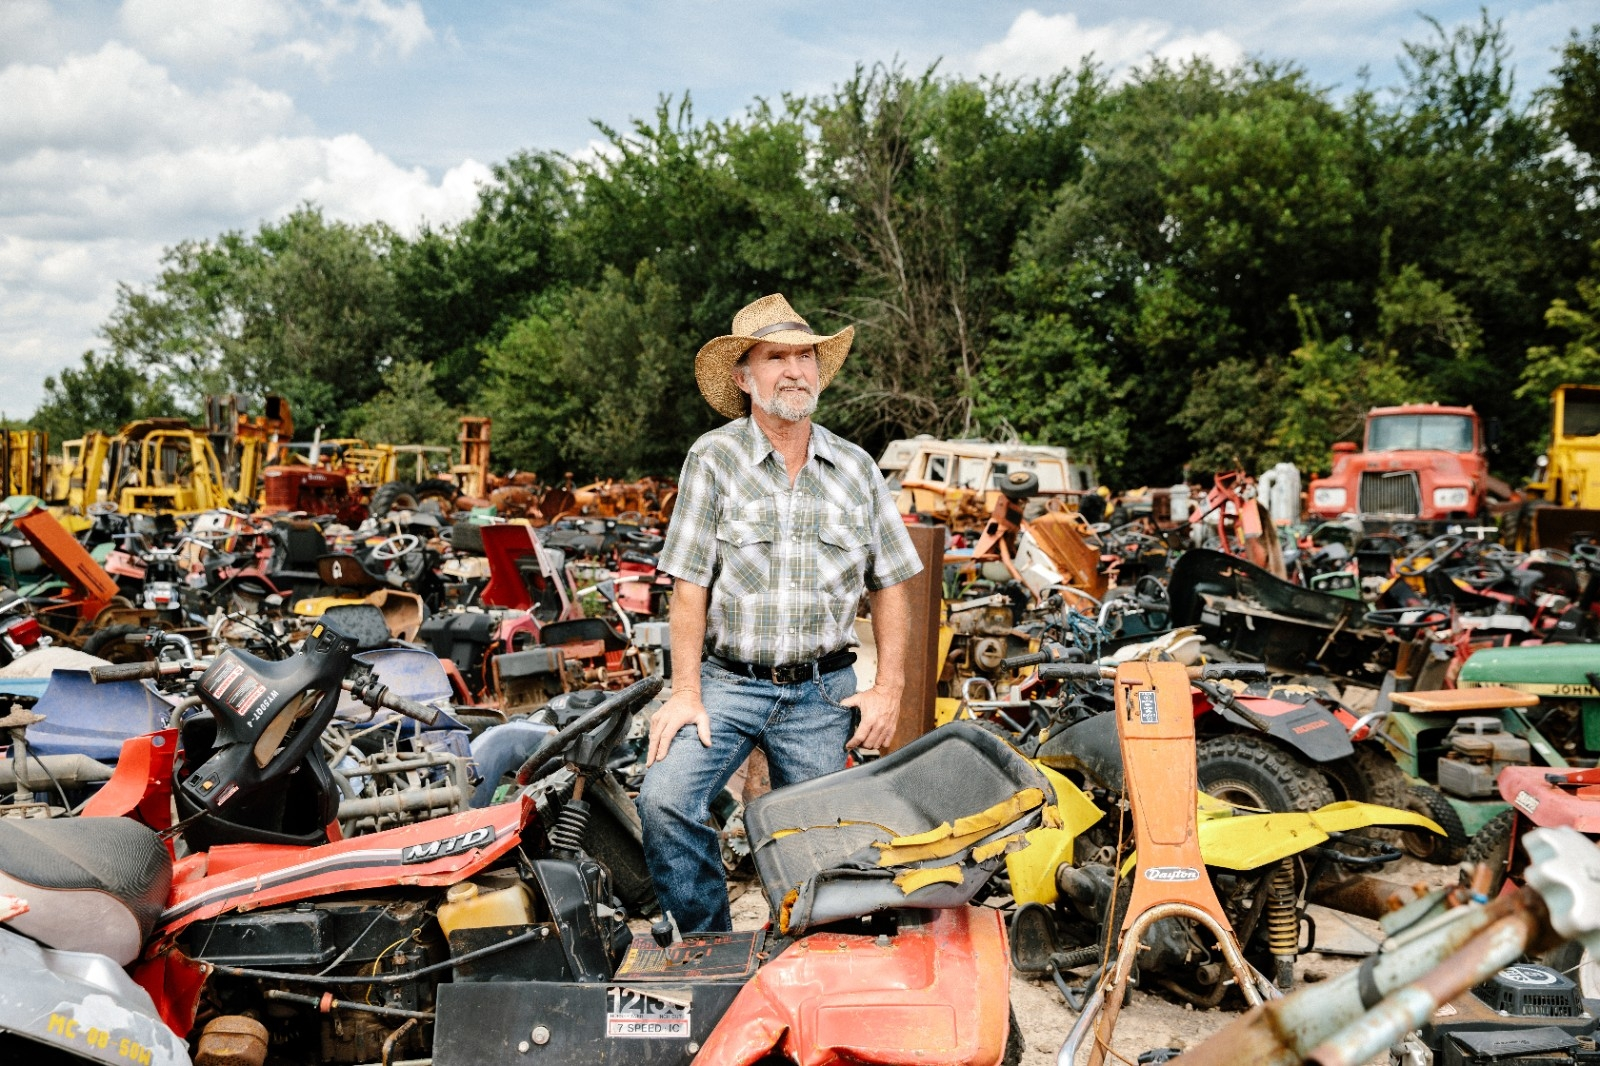 Owner stands near some scrap material in his junkyard and auto salvage business.